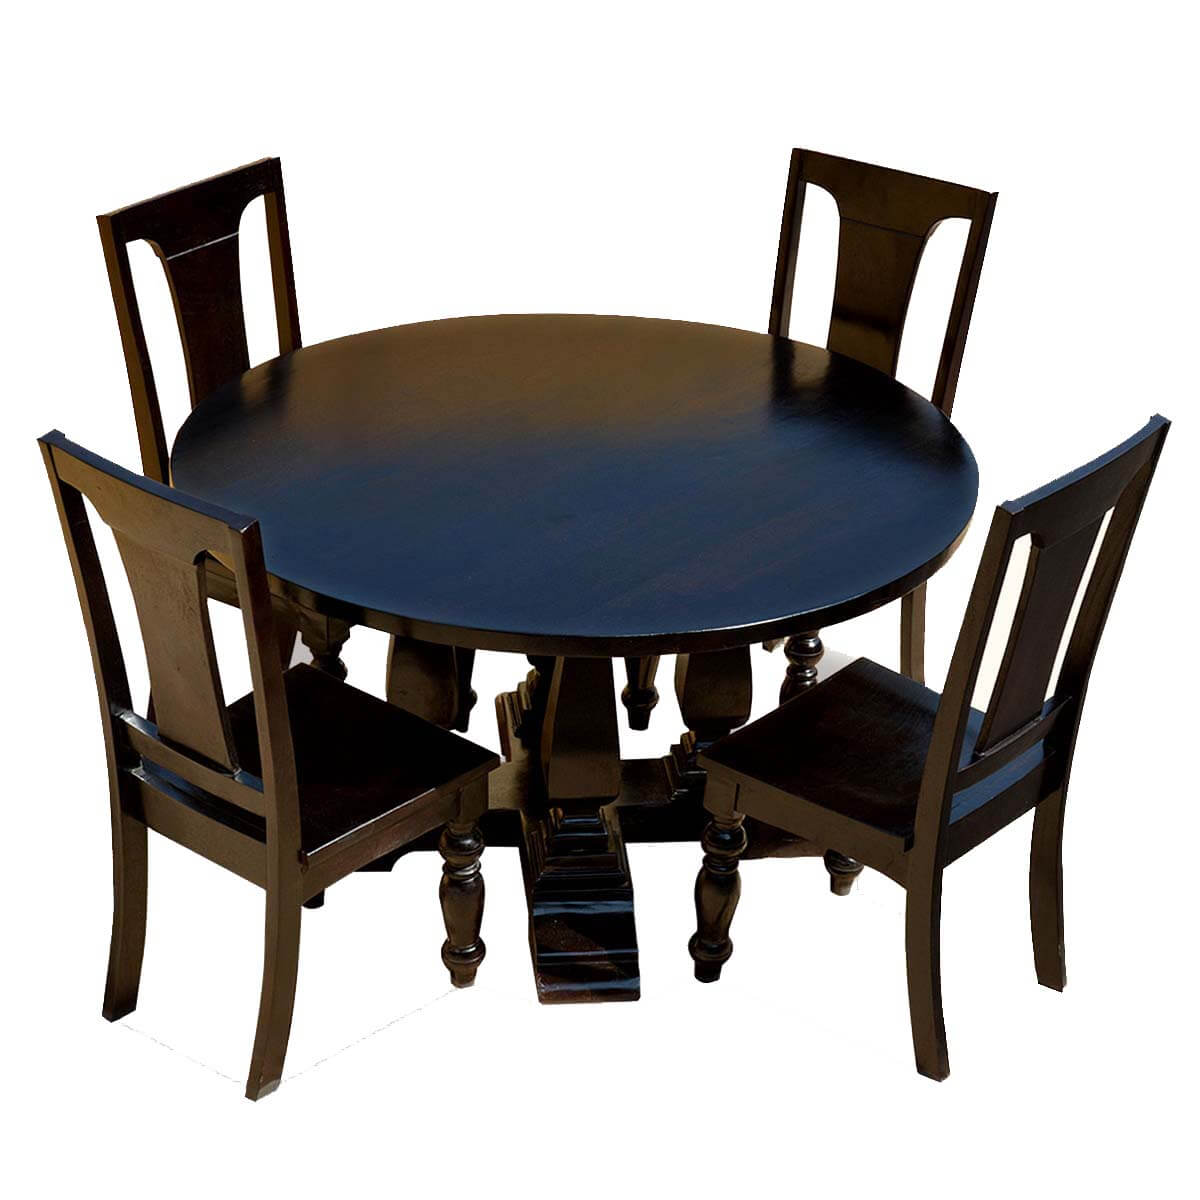 black solid wood cruciform base baluster sutton 60 round dining table. Black Bedroom Furniture Sets. Home Design Ideas